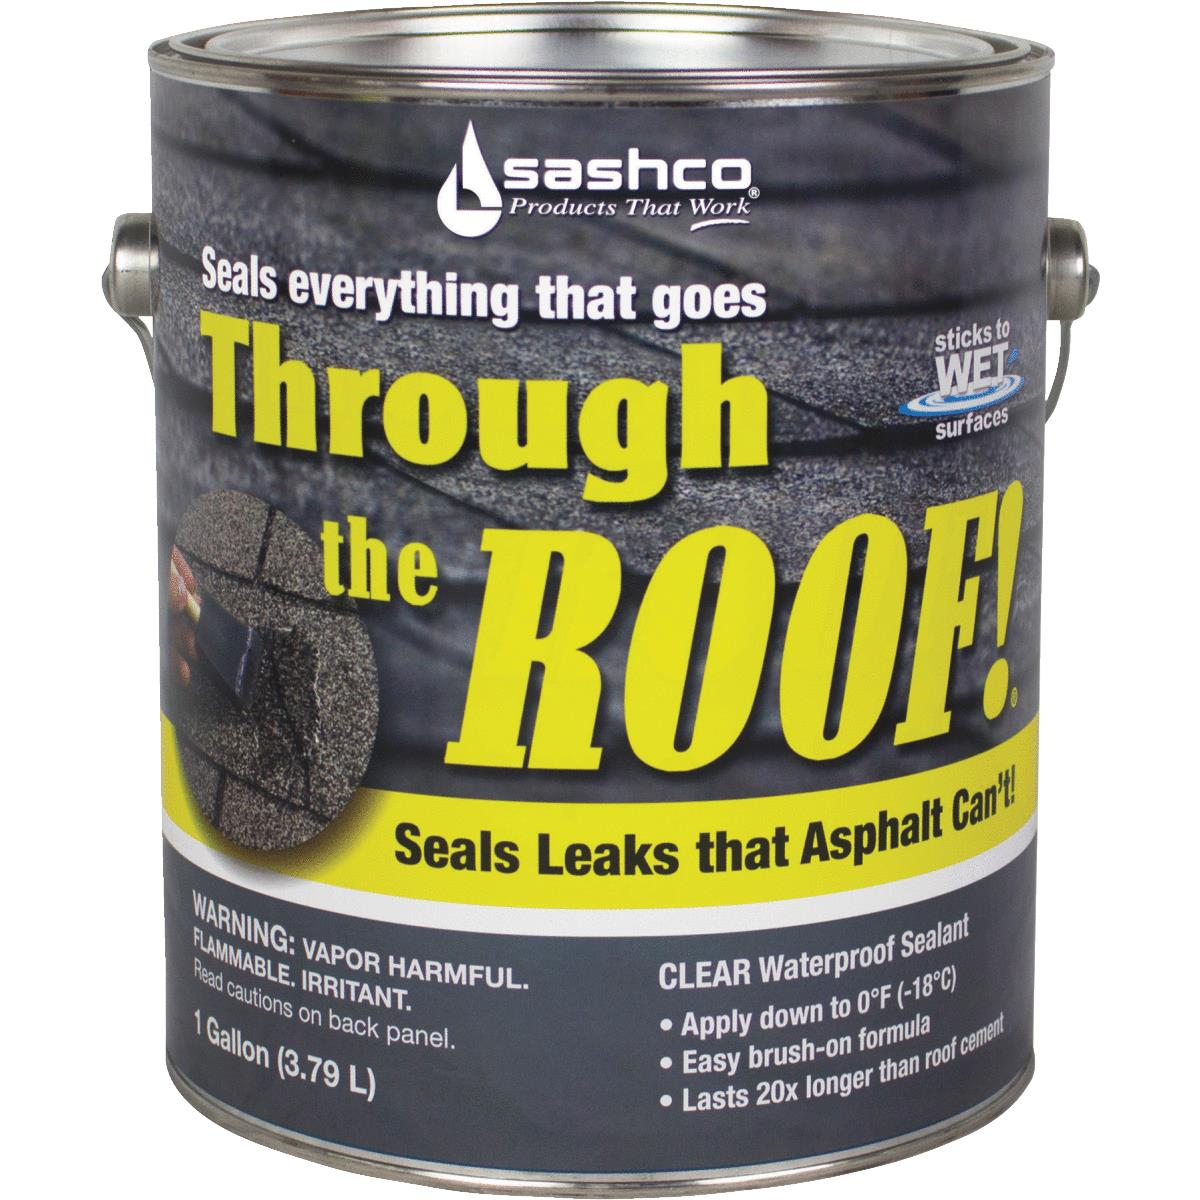 Sashco Through the Roof Cement & Patching Sealant